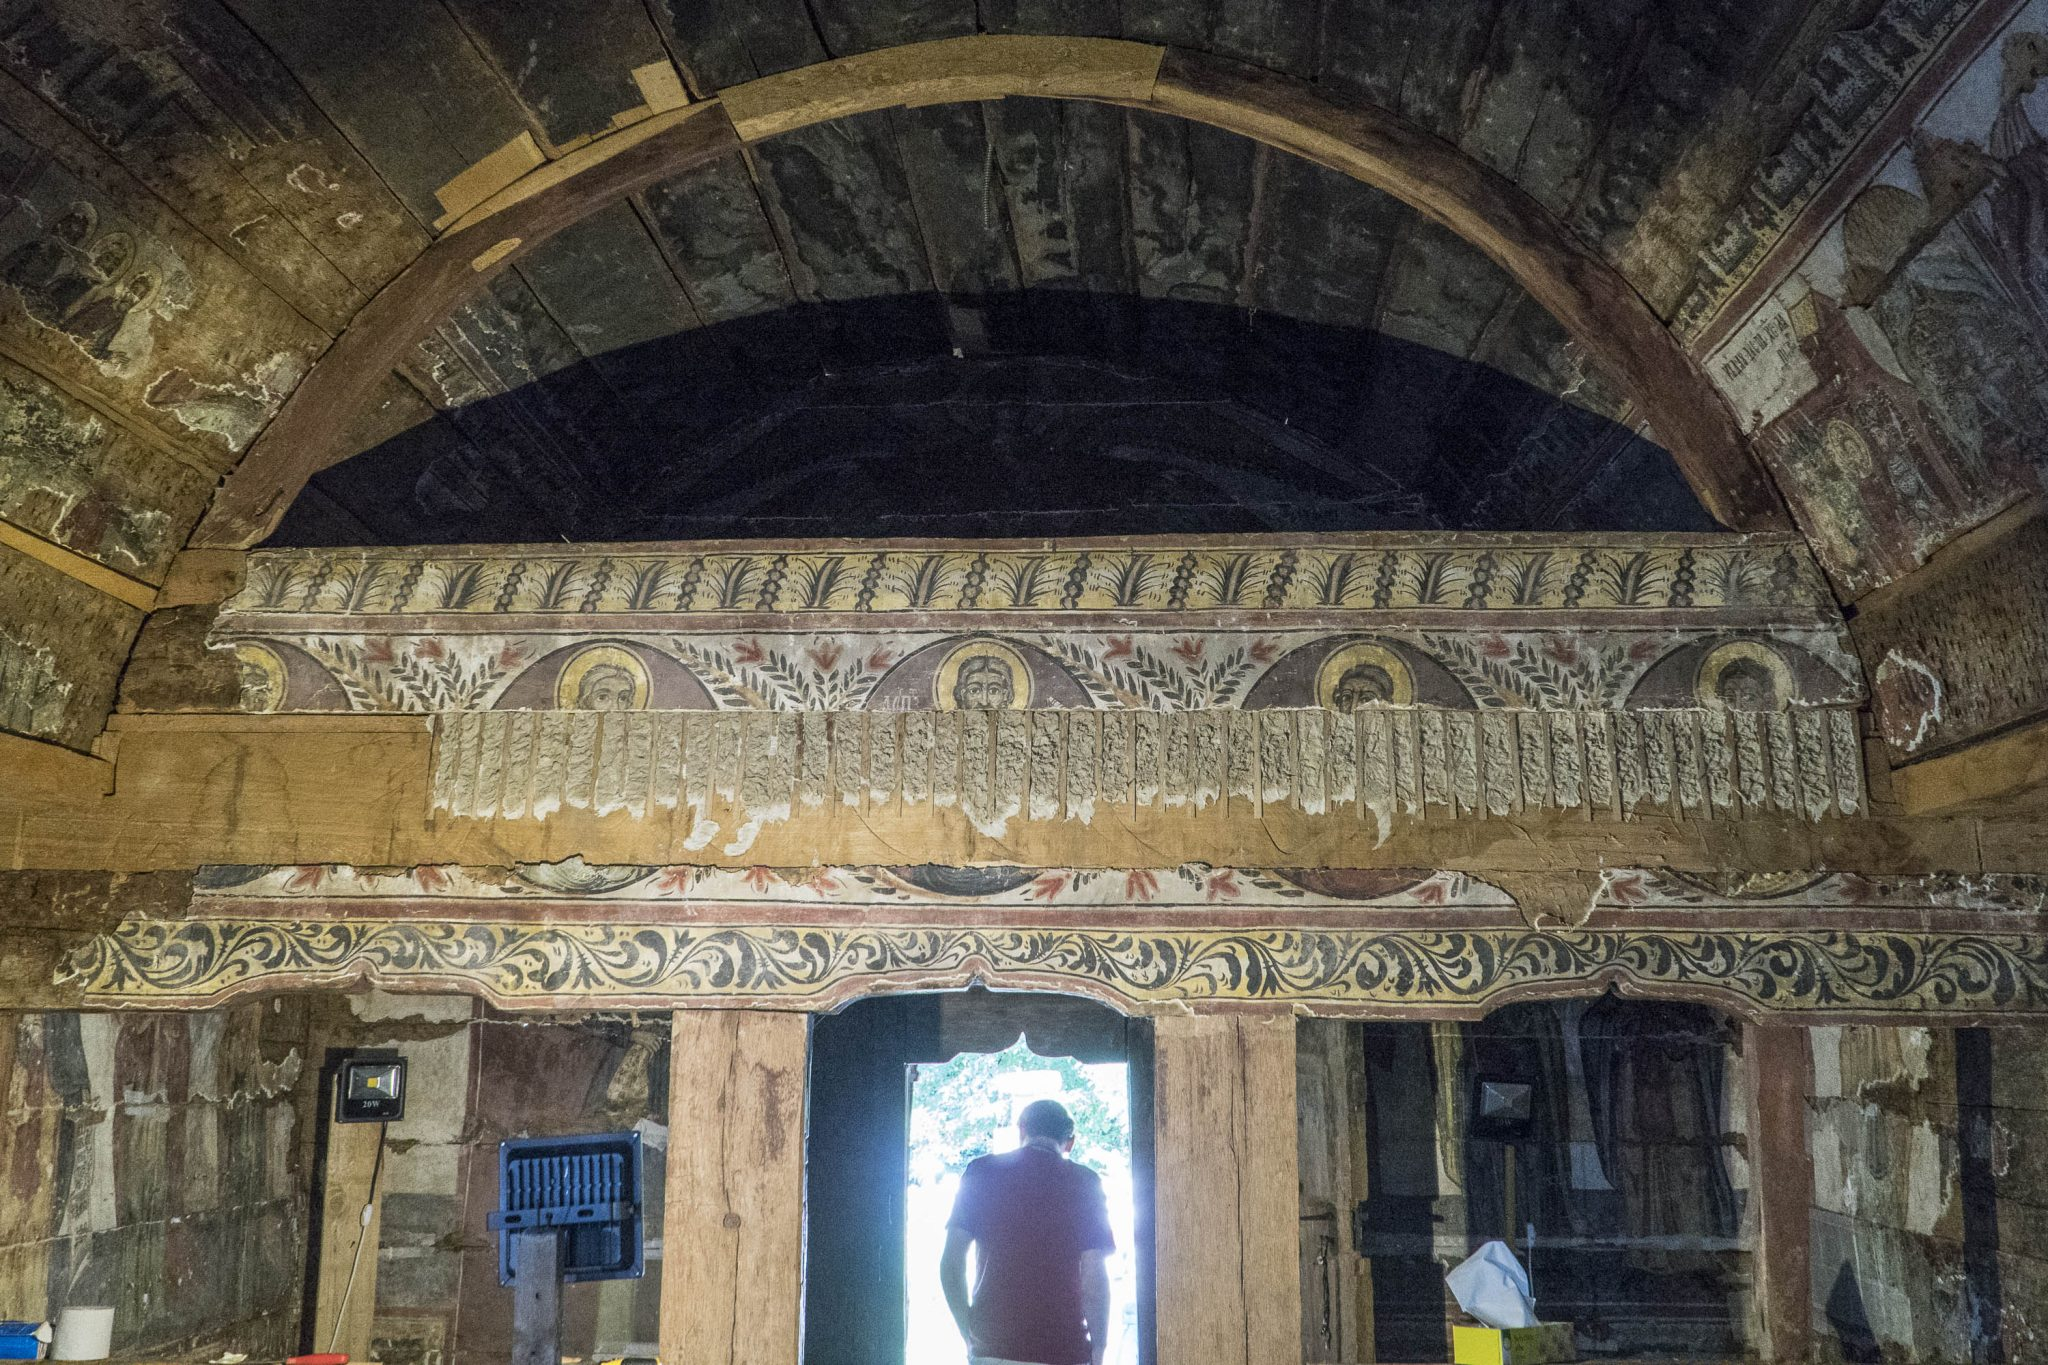 Reattachment of previously extracted frescos